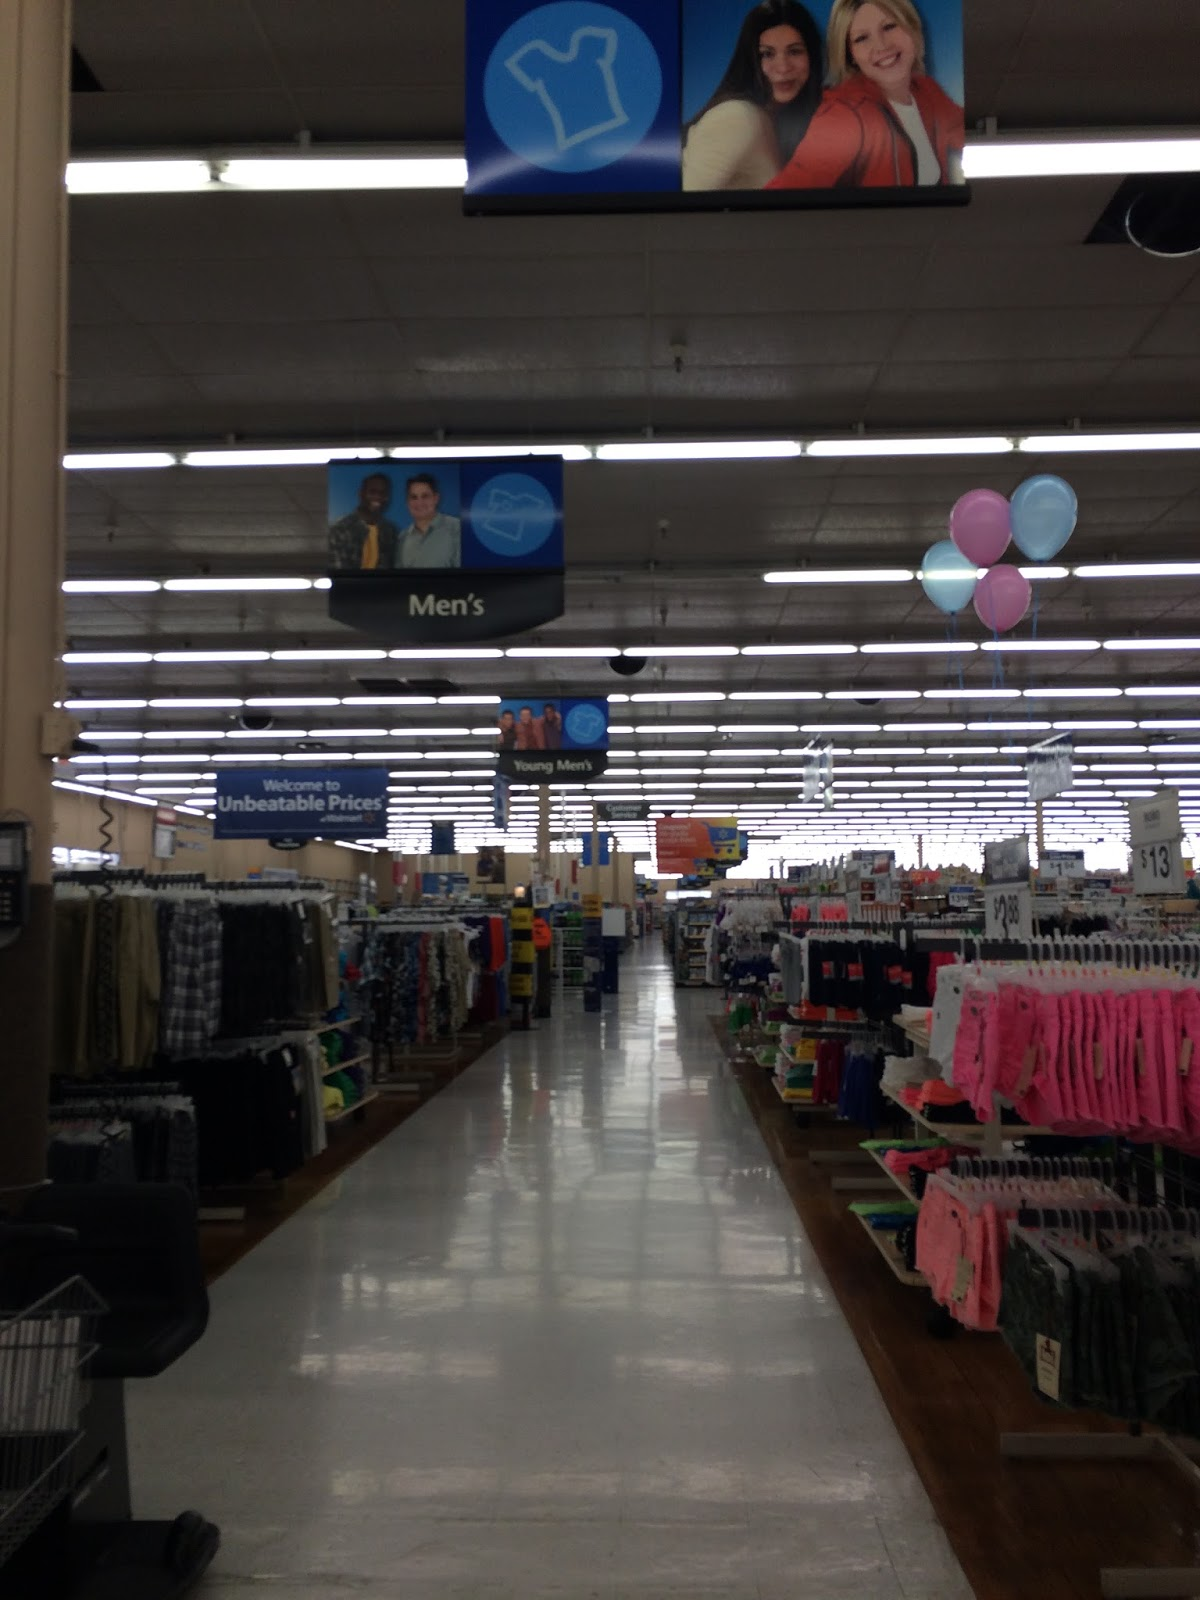 Dead and Dying retail: The story of a Wal-Mart inside a ...